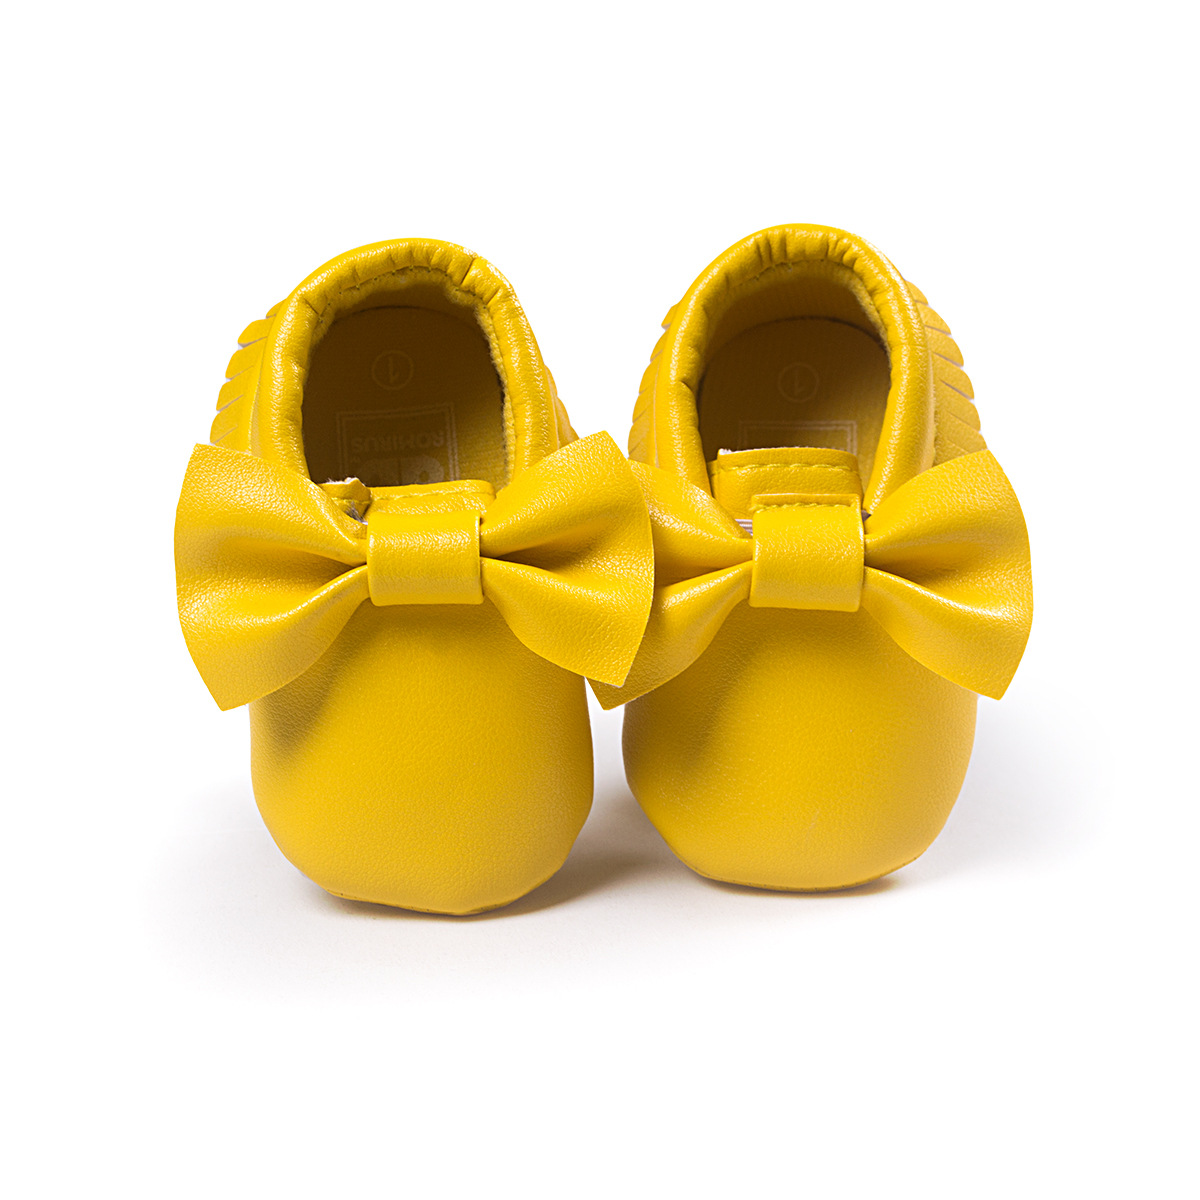 Handmade-Soft-Bottom-Fashion-Tassels-Baby-Moccasin-Newborn-Babies-Shoes-14-colors-PU-leather-Prewalkers-Boots-4